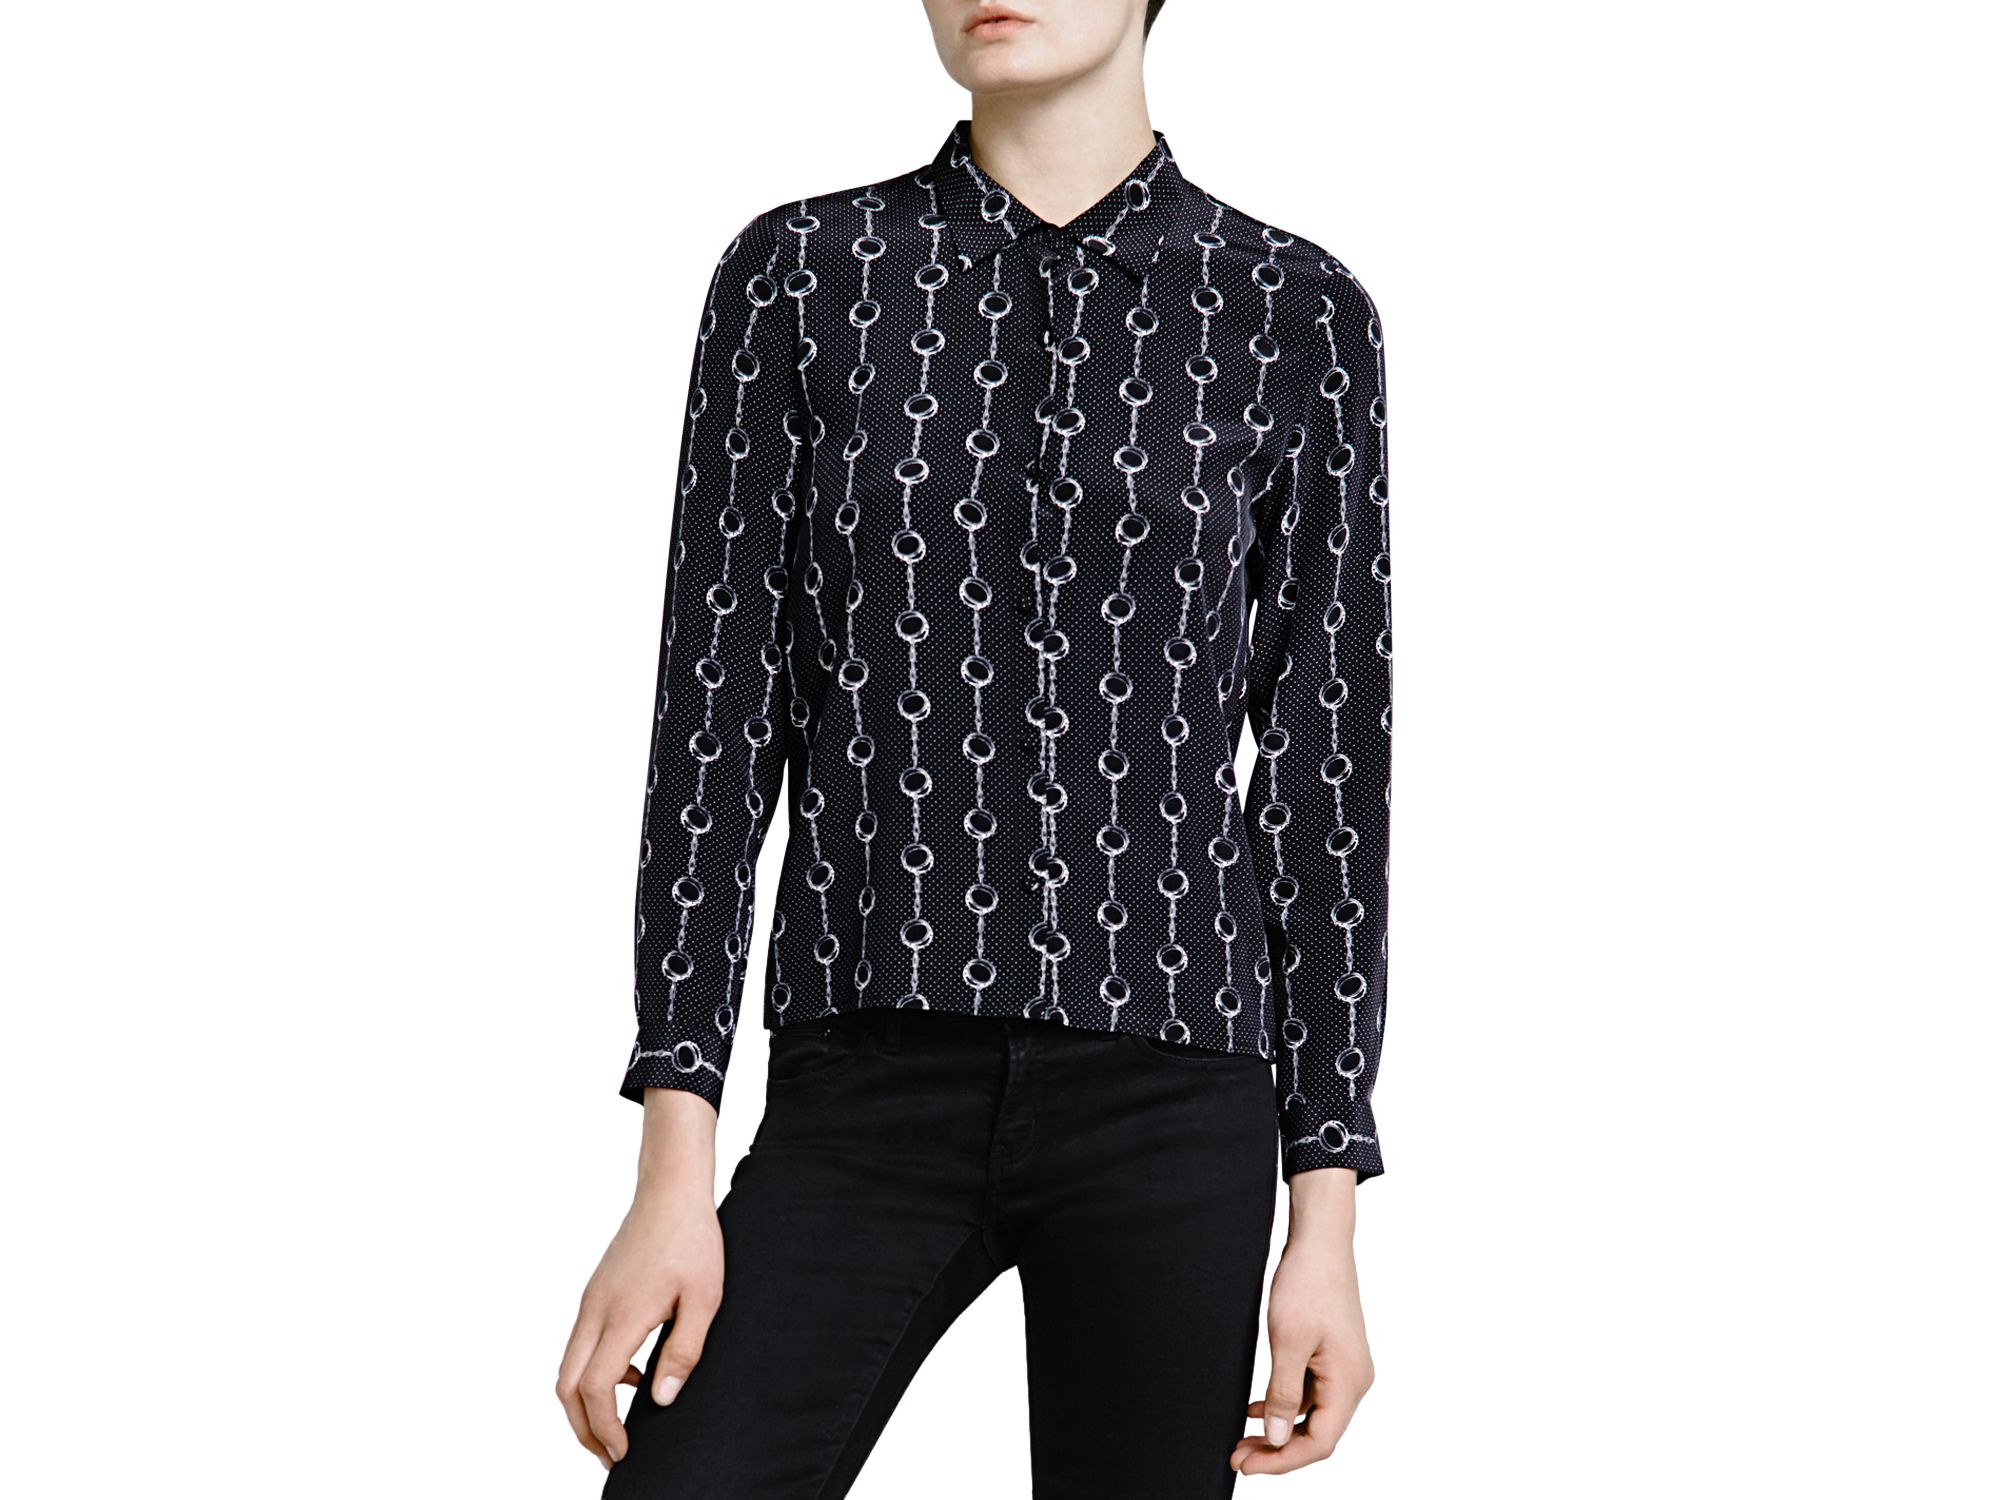 106e6ab3855186 The Kooples Handcuff Print Silk Crepe De Chine Shirt in Black - Lyst